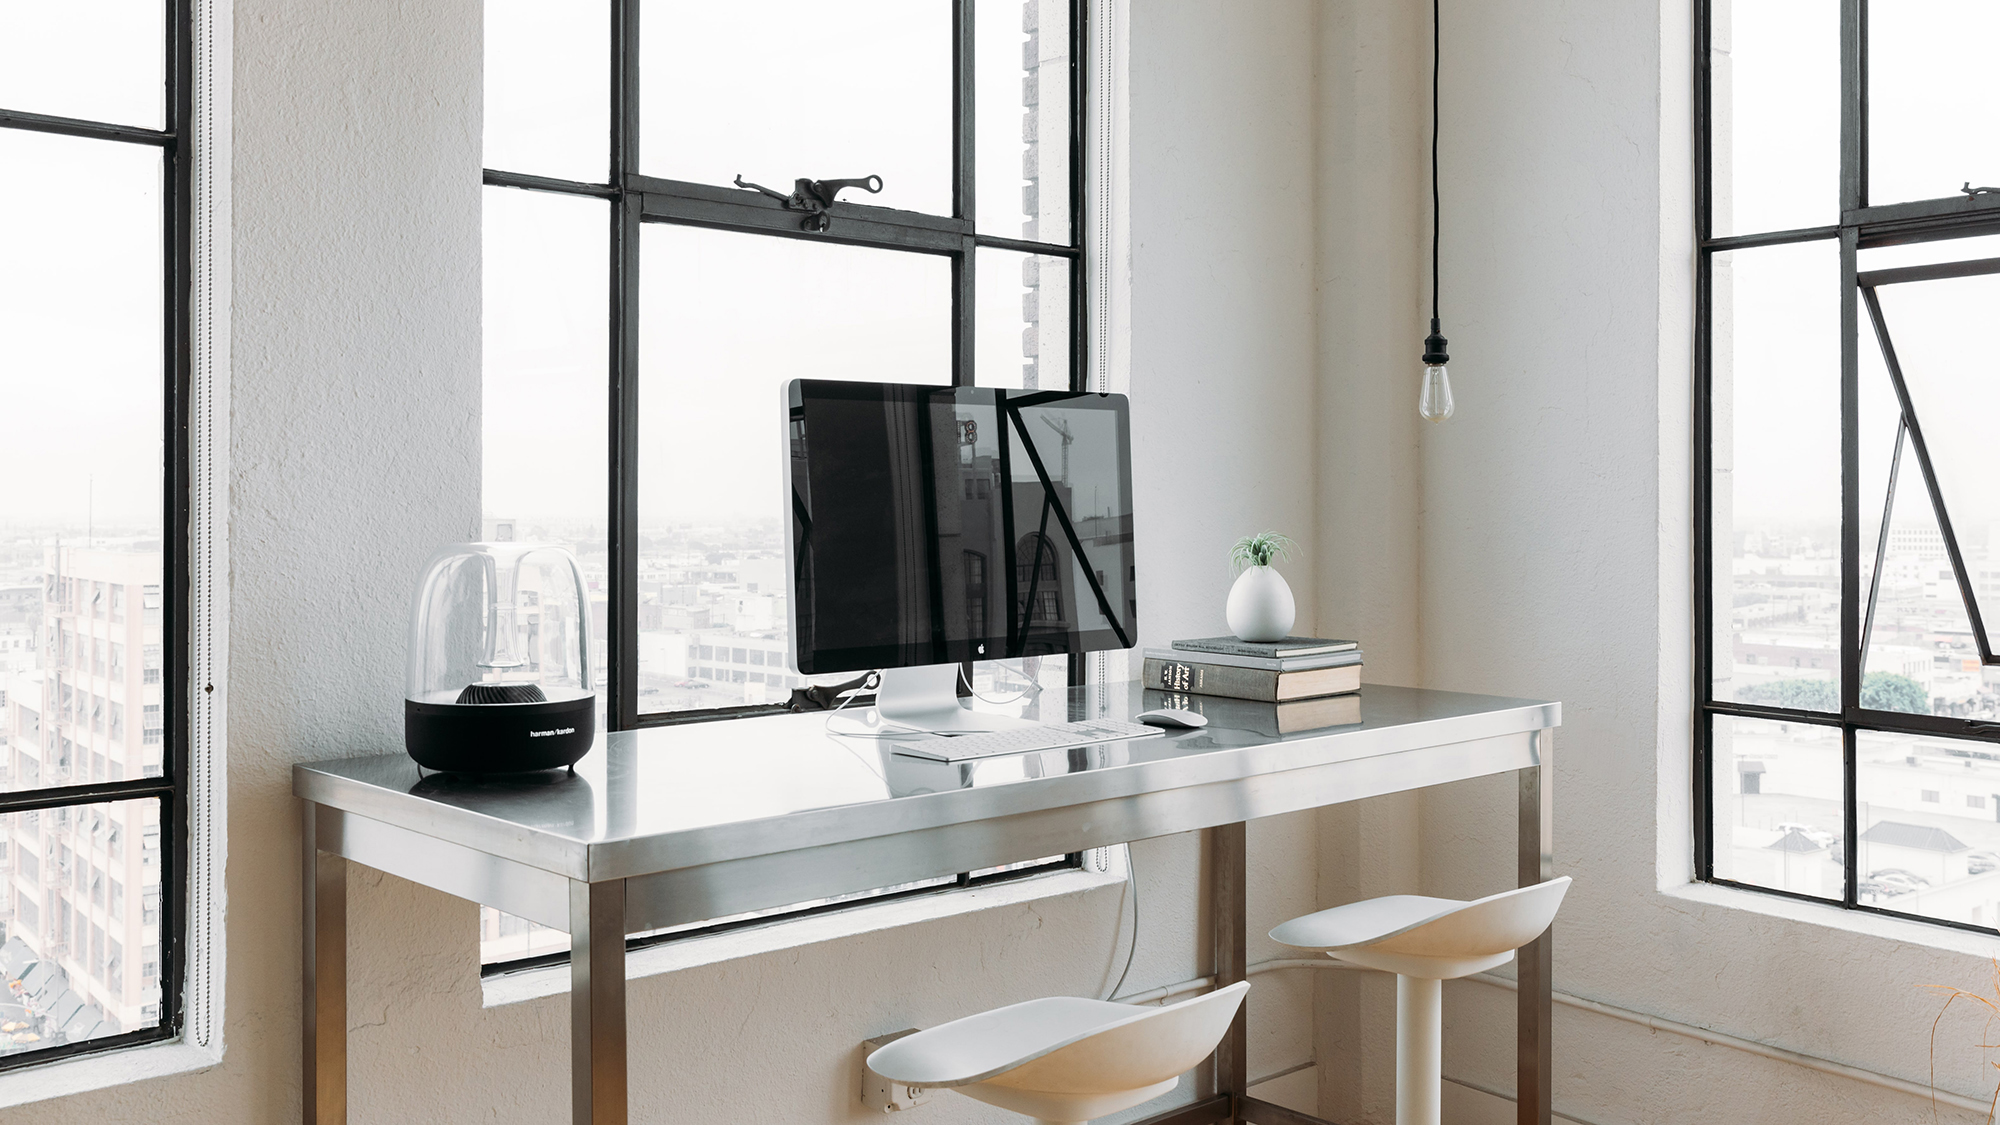 Office-Desk-Workspace-Apple-iMac-Coffee-Soho-New York-Contemporary-Minimal-Loft-Posh-Black via Death To Stock_1.jpg